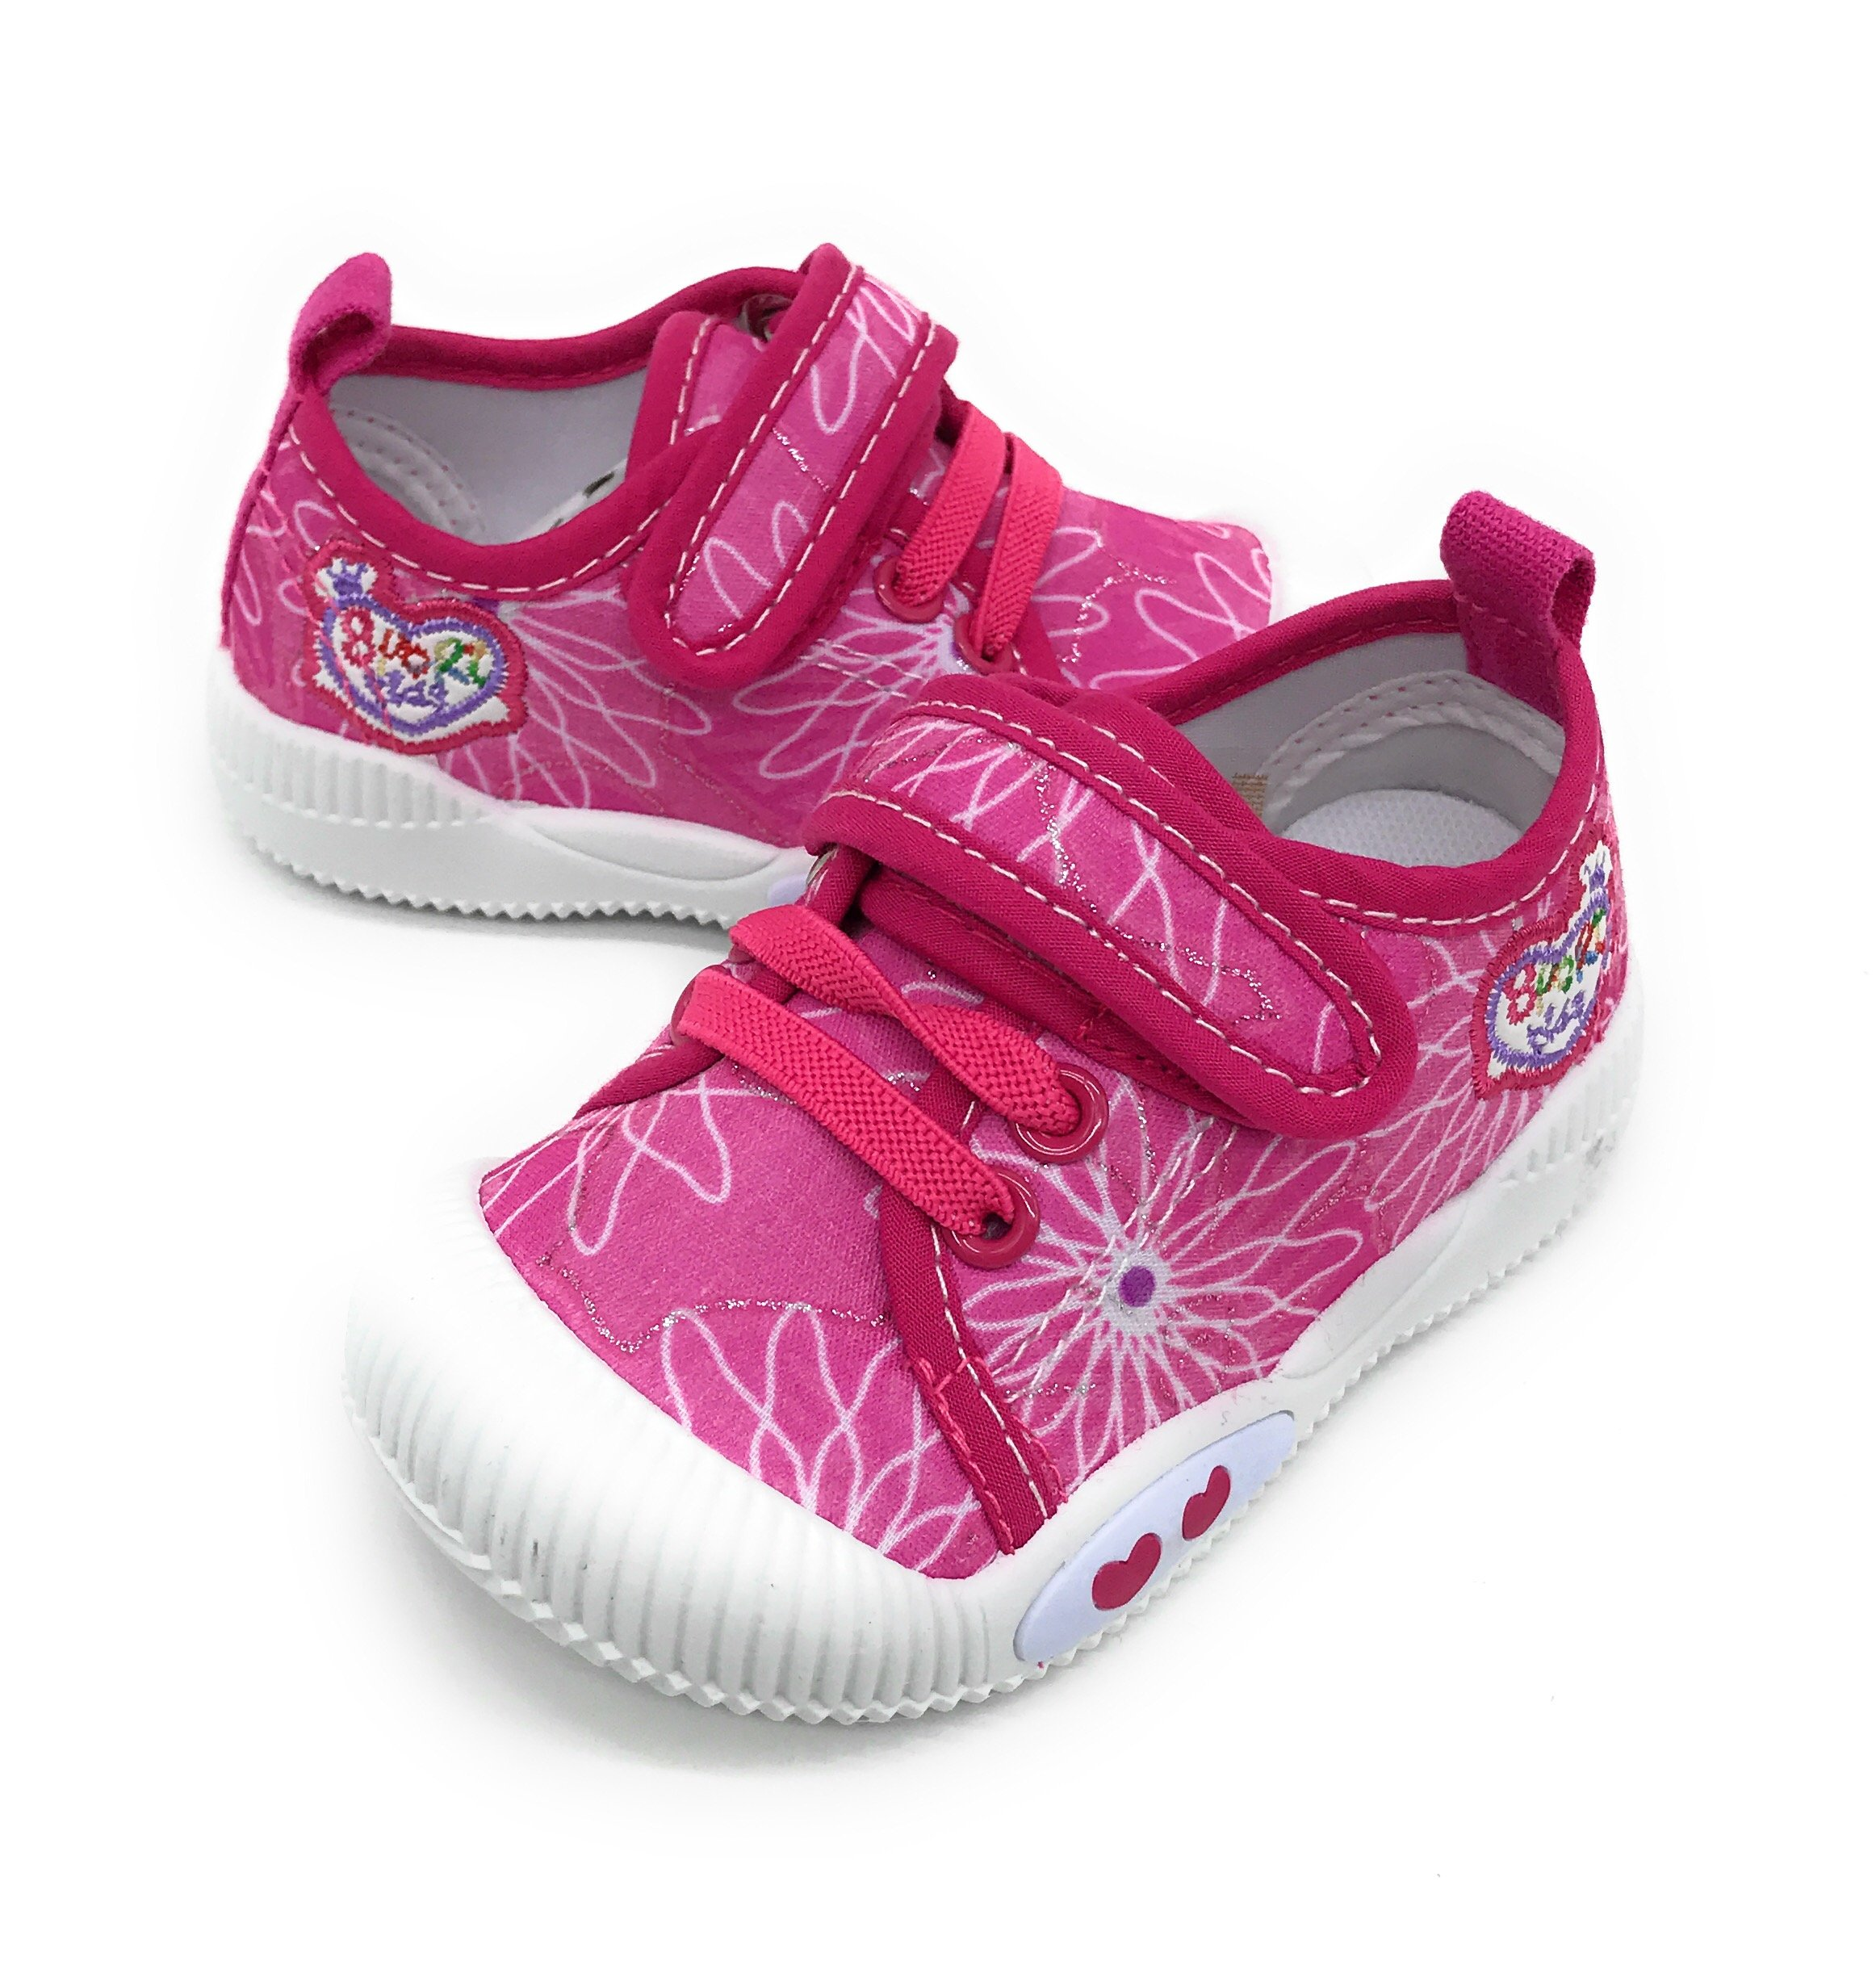 Sloth New Cute Flywire Weaving 3D Printing Jogging Shoes For Boys Girls